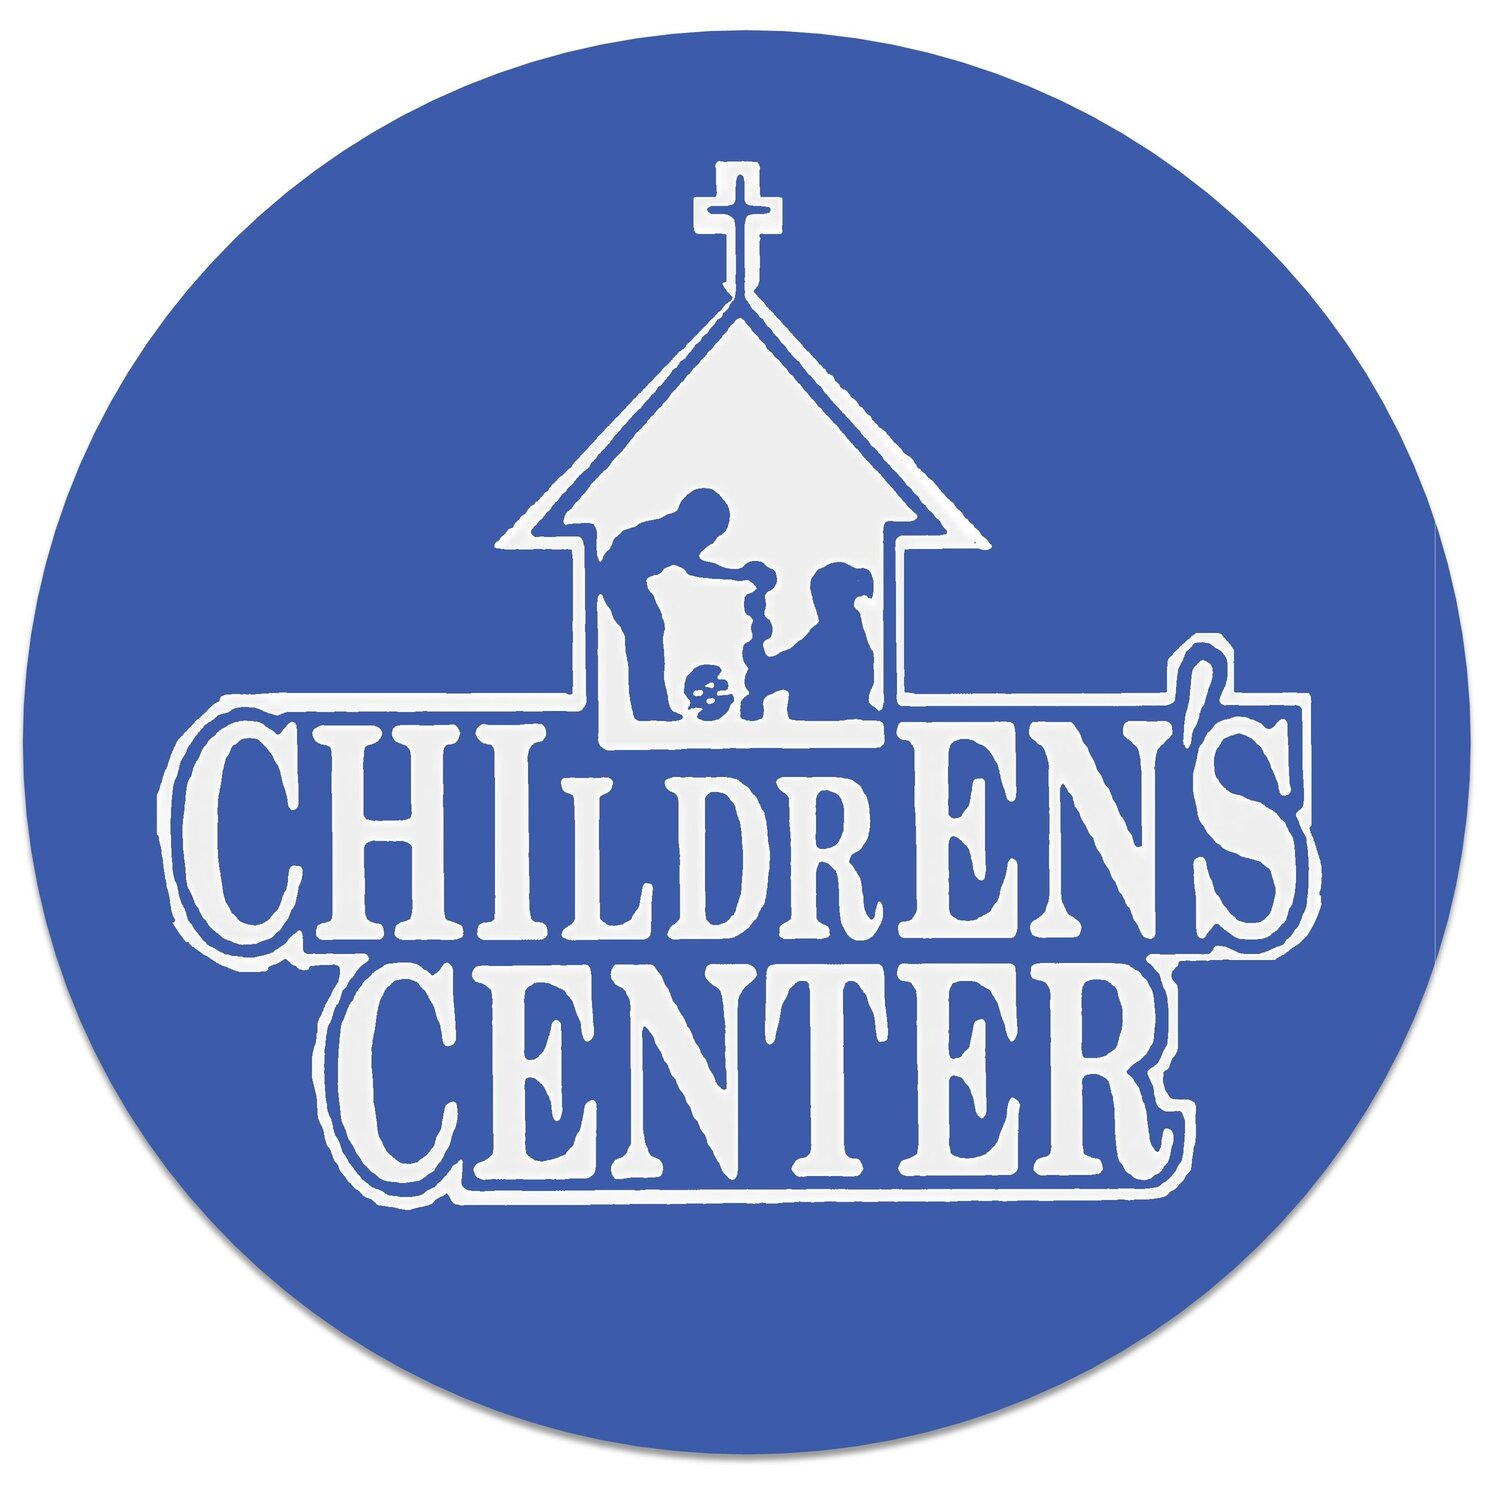 Belle Meade Children's Center